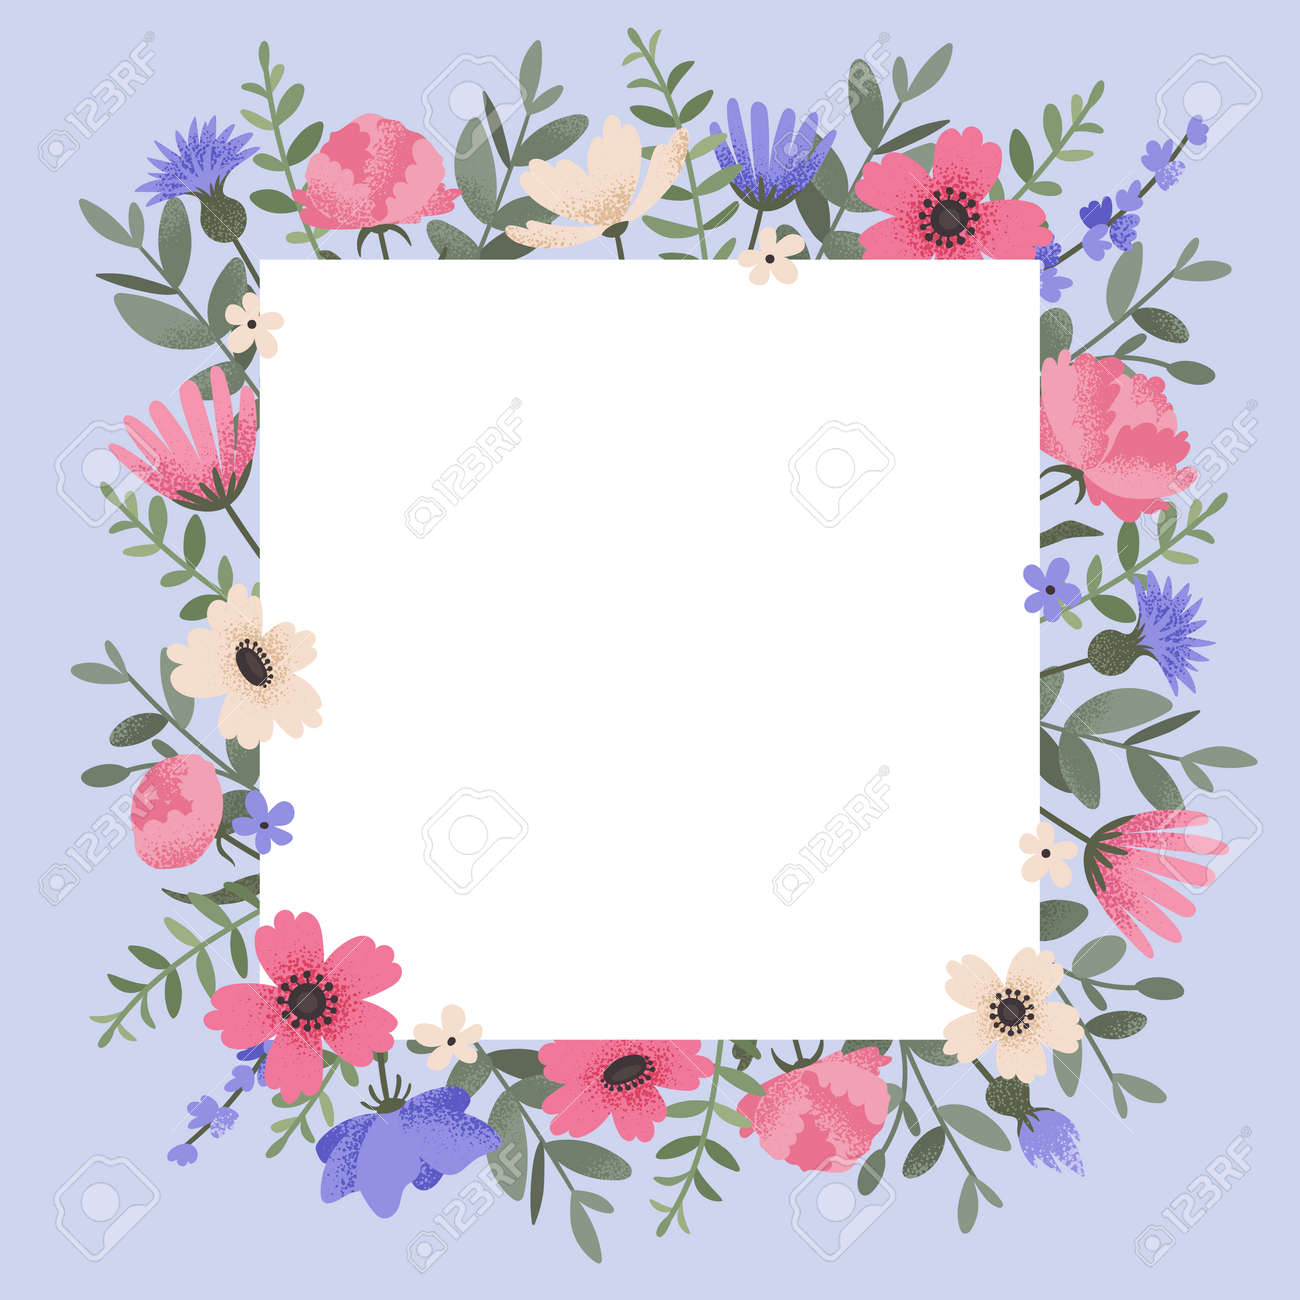 Floral background design with summer flowers. Greeting card with place for text. Template for invitation card with beautiful peonies and anemone flowers. Vector illustration - 164593147